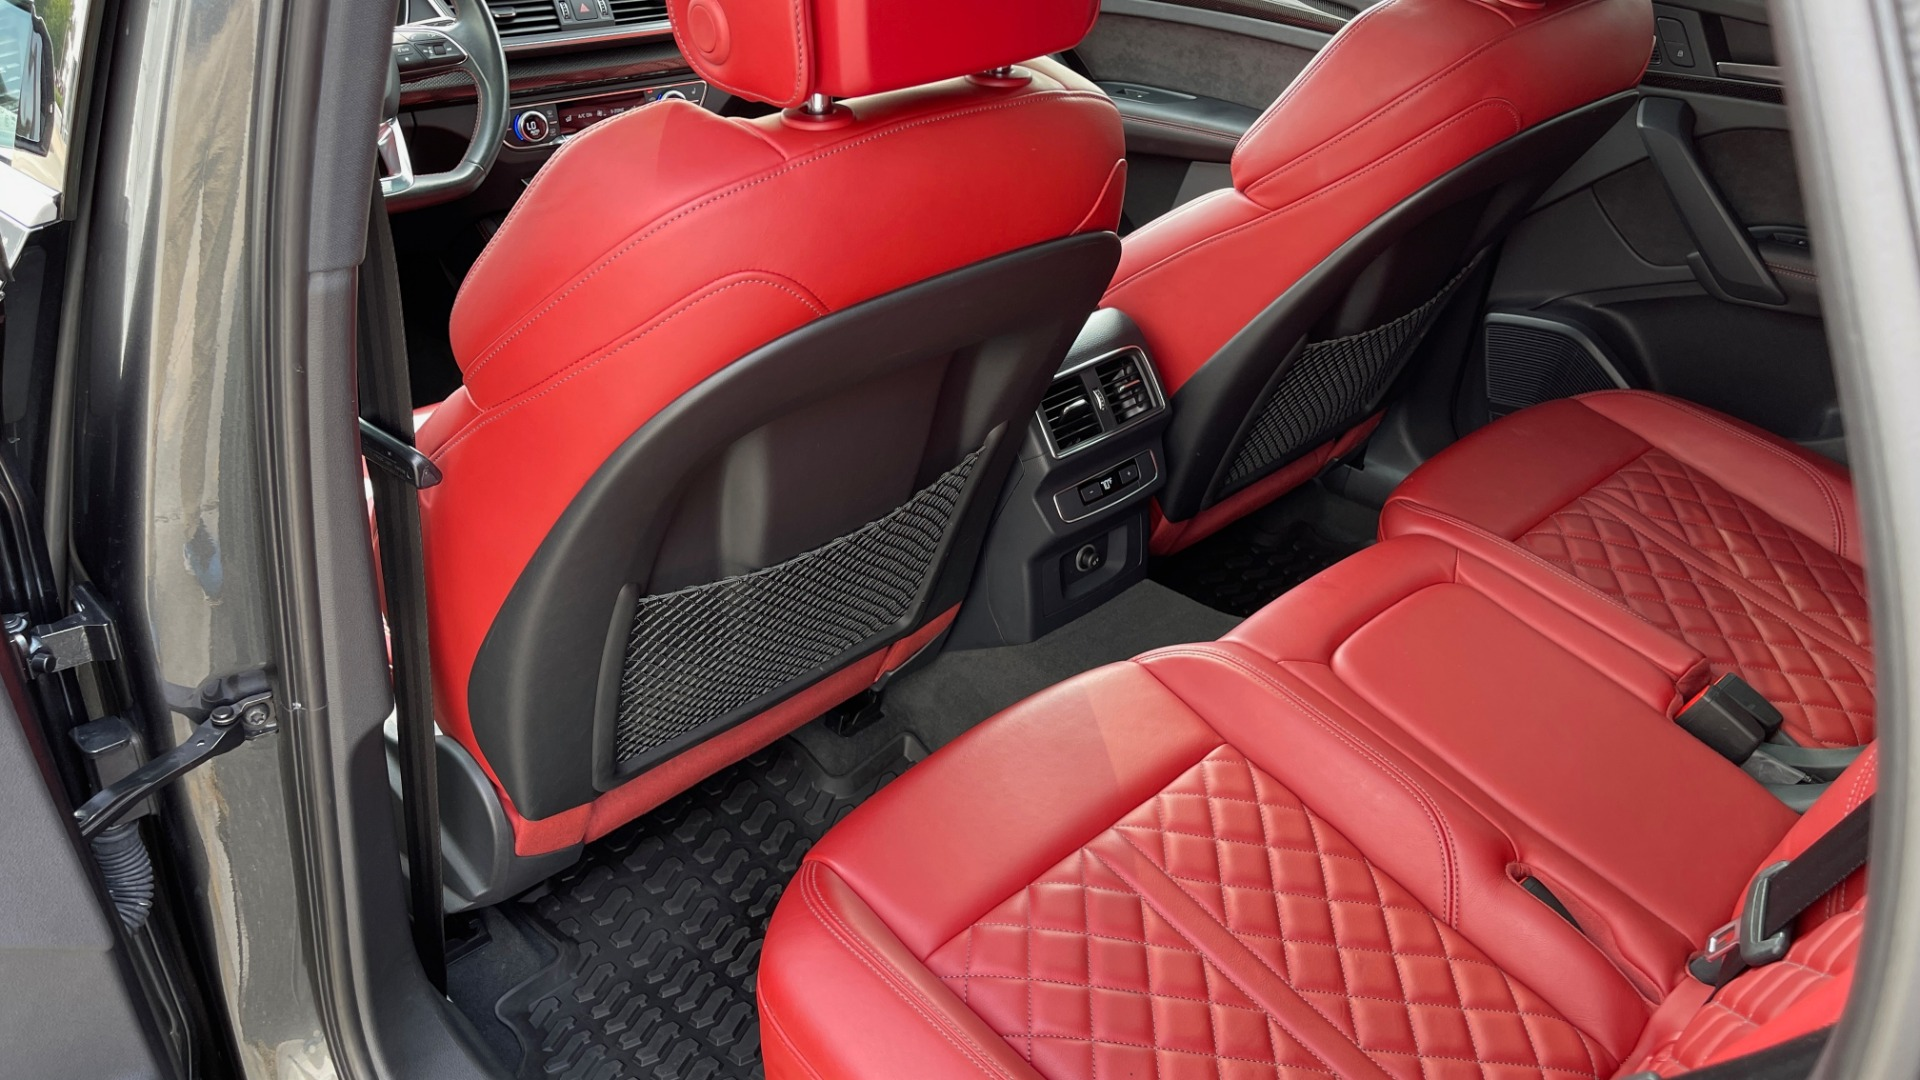 Used 2018 Audi SQ5 PREMIUM PLUS / S-SPORT / NAV / B&O SND / SUNROOF / REARVIEW for sale $43,995 at Formula Imports in Charlotte NC 28227 58